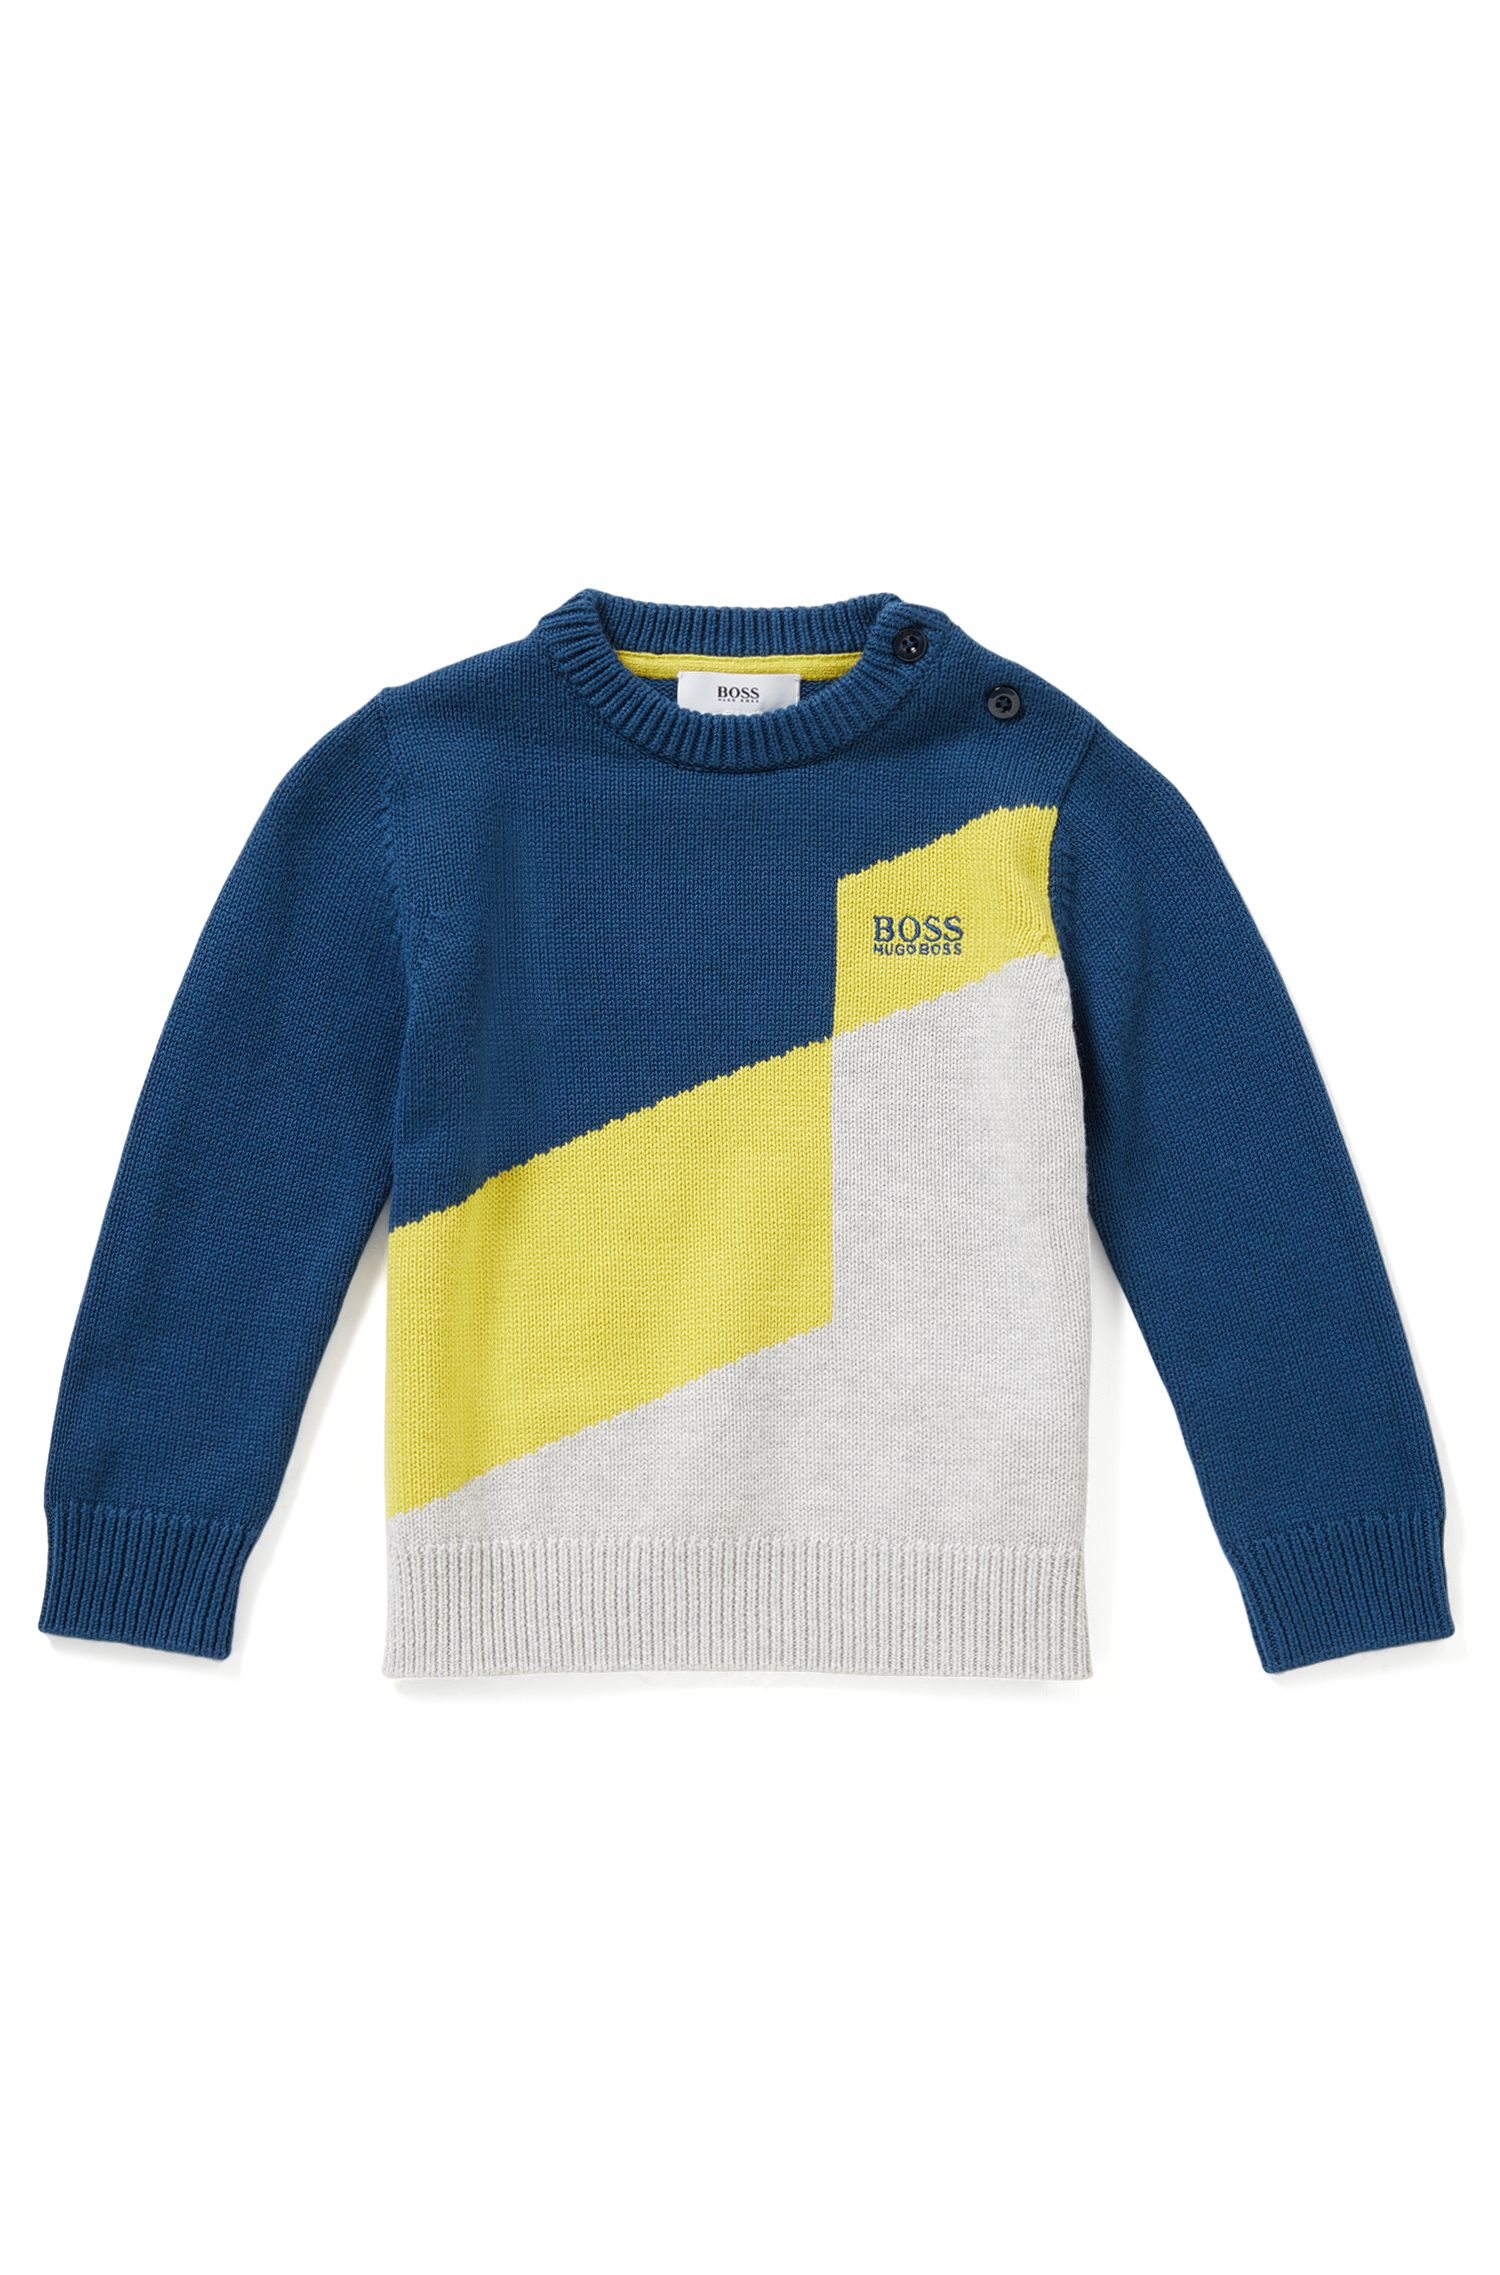 Kids' sweater in a cotton blend